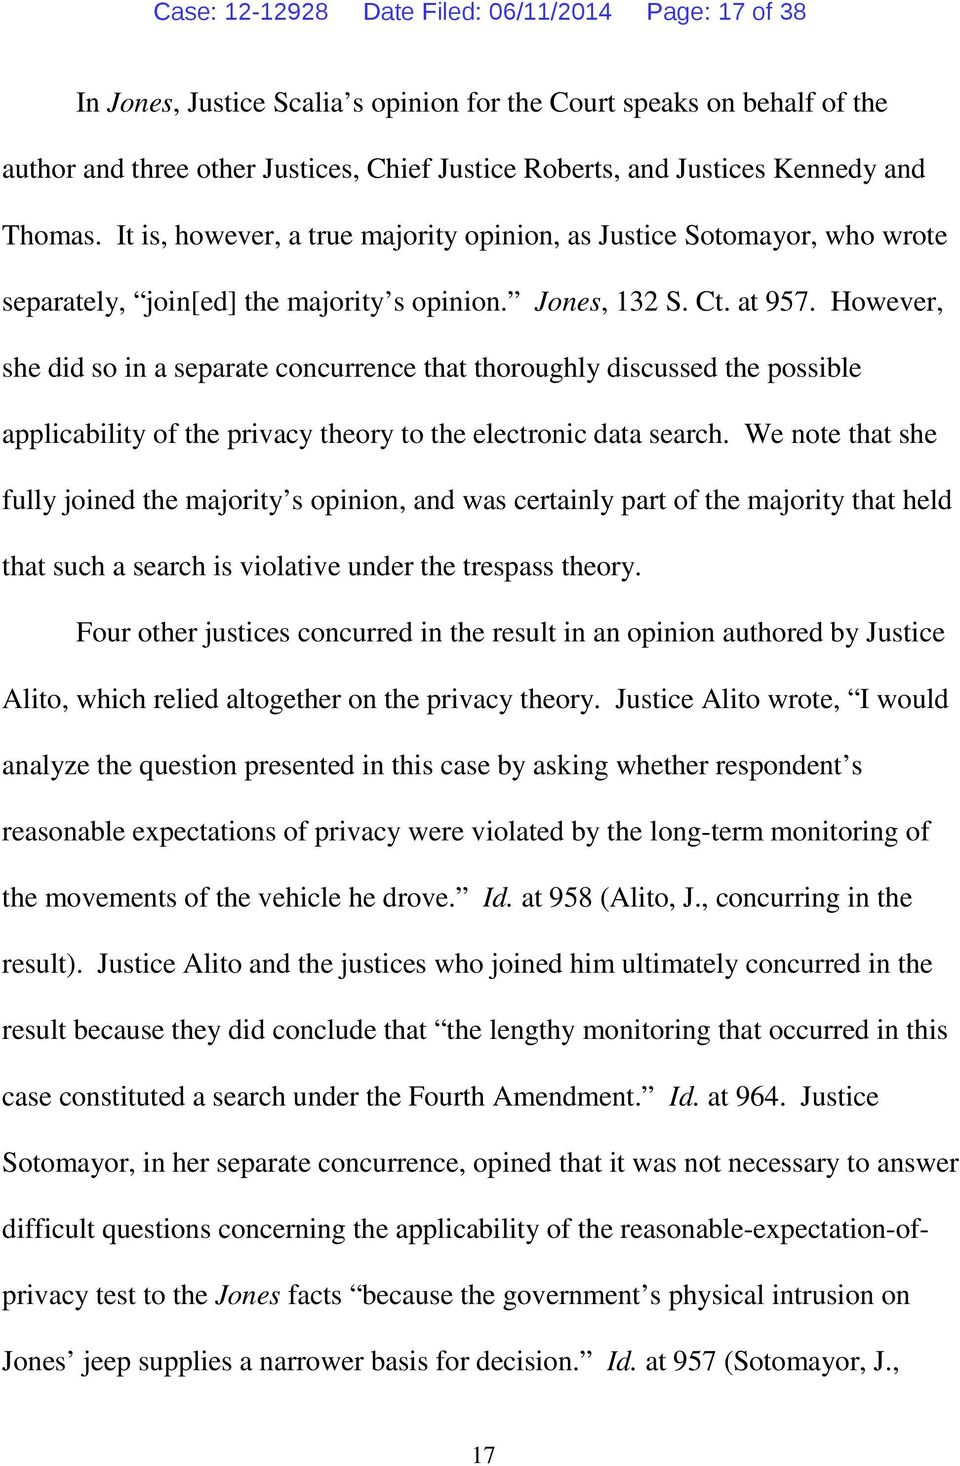 However, she did so in a separate concurrence that thoroughly discussed the possible applicability of the privacy theory to the electronic data search.